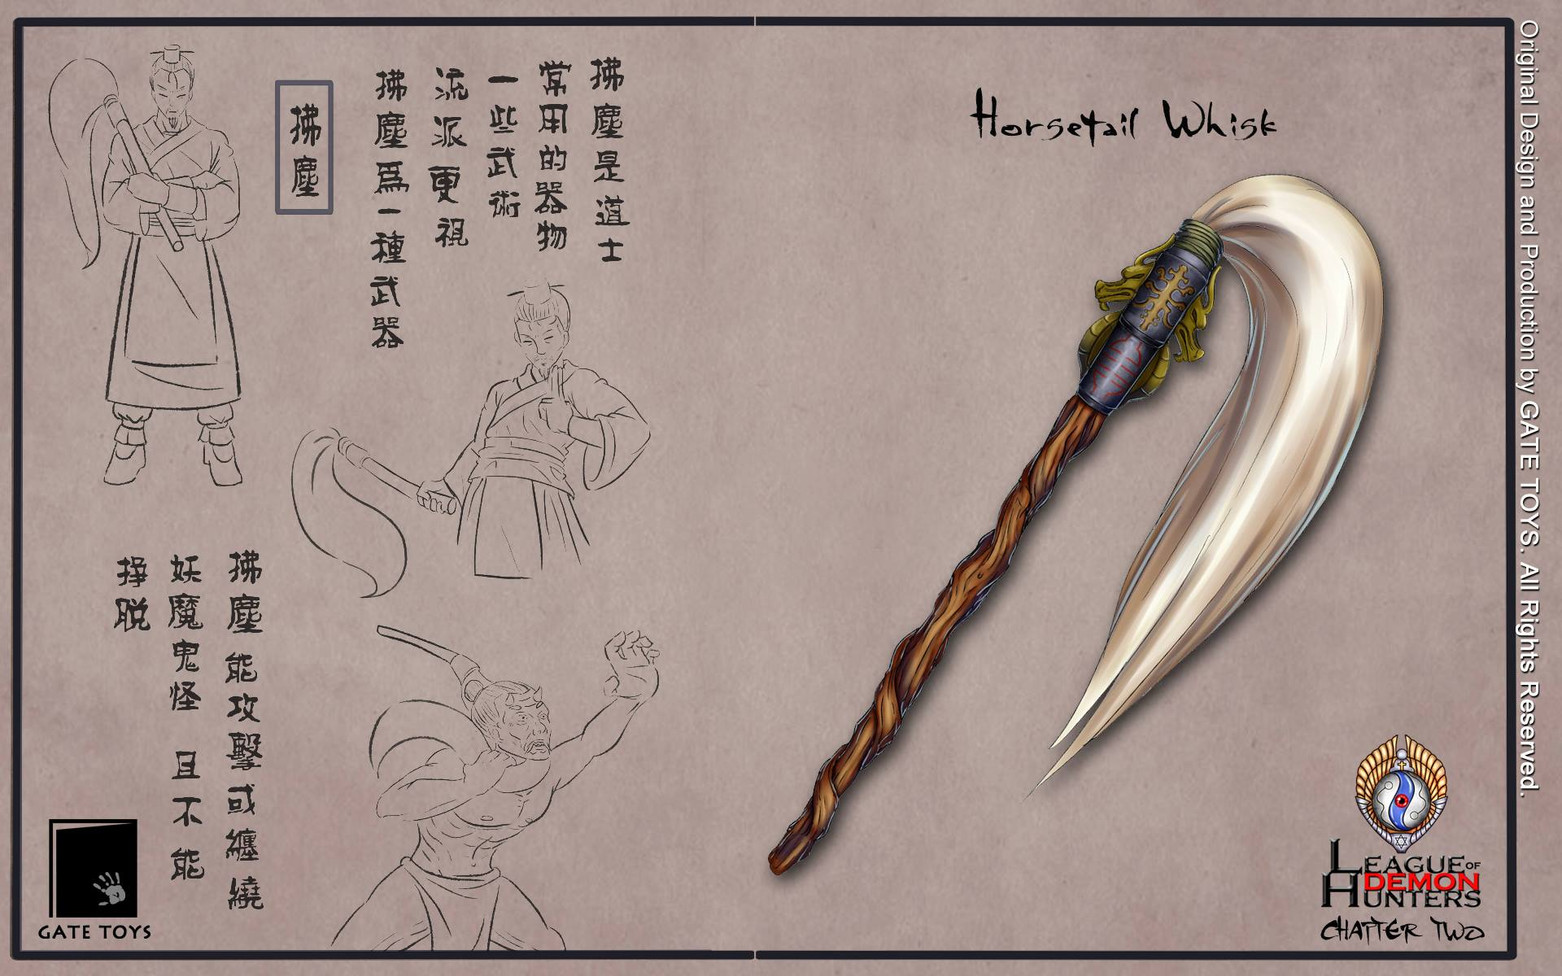 The Horsetail Whisk is a common tools of Daoshi (Taoist Priest), it can be used to attack and capture demons.